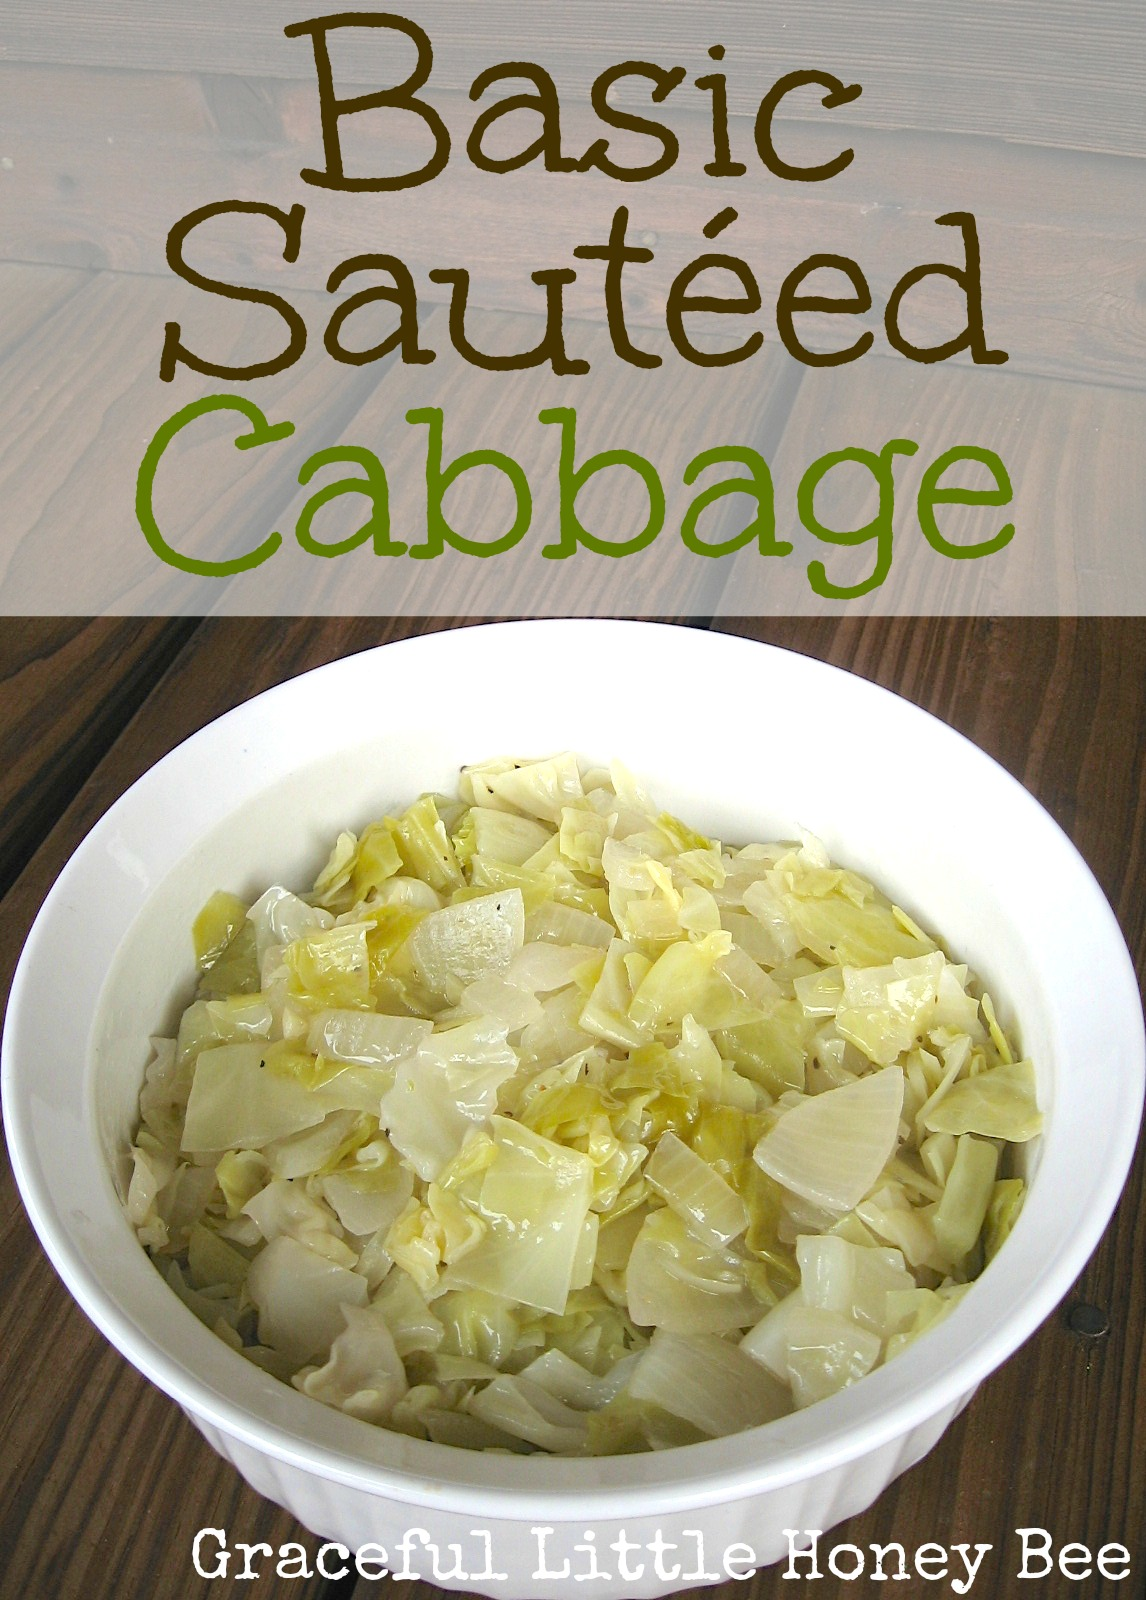 Calorie cabbage. Cabbage Dishes 1